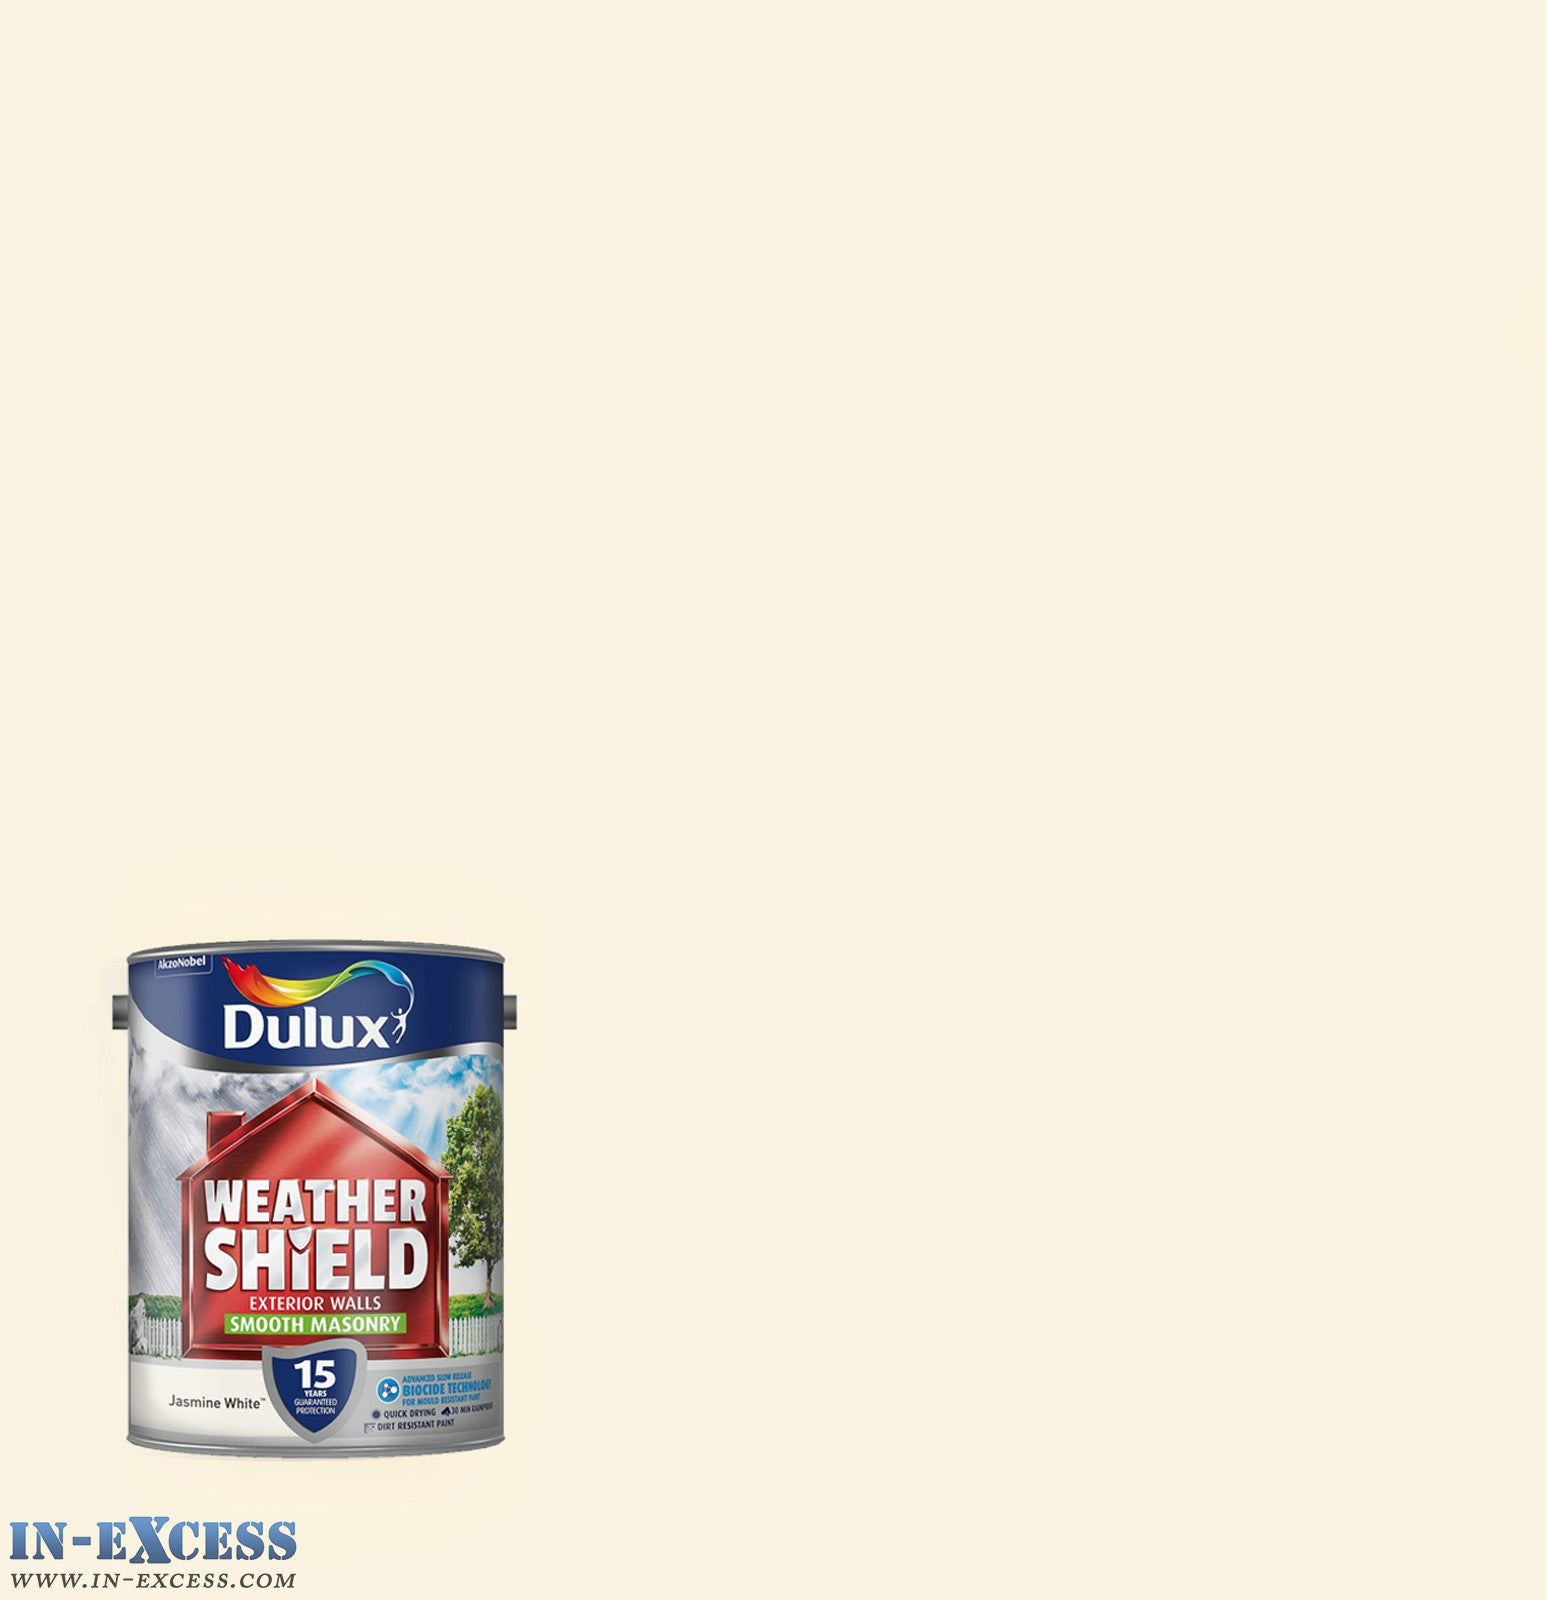 Dulux weather shield exterior walls masonry paint smooth jasmine whi in excess direct - White exterior masonry paint image ...